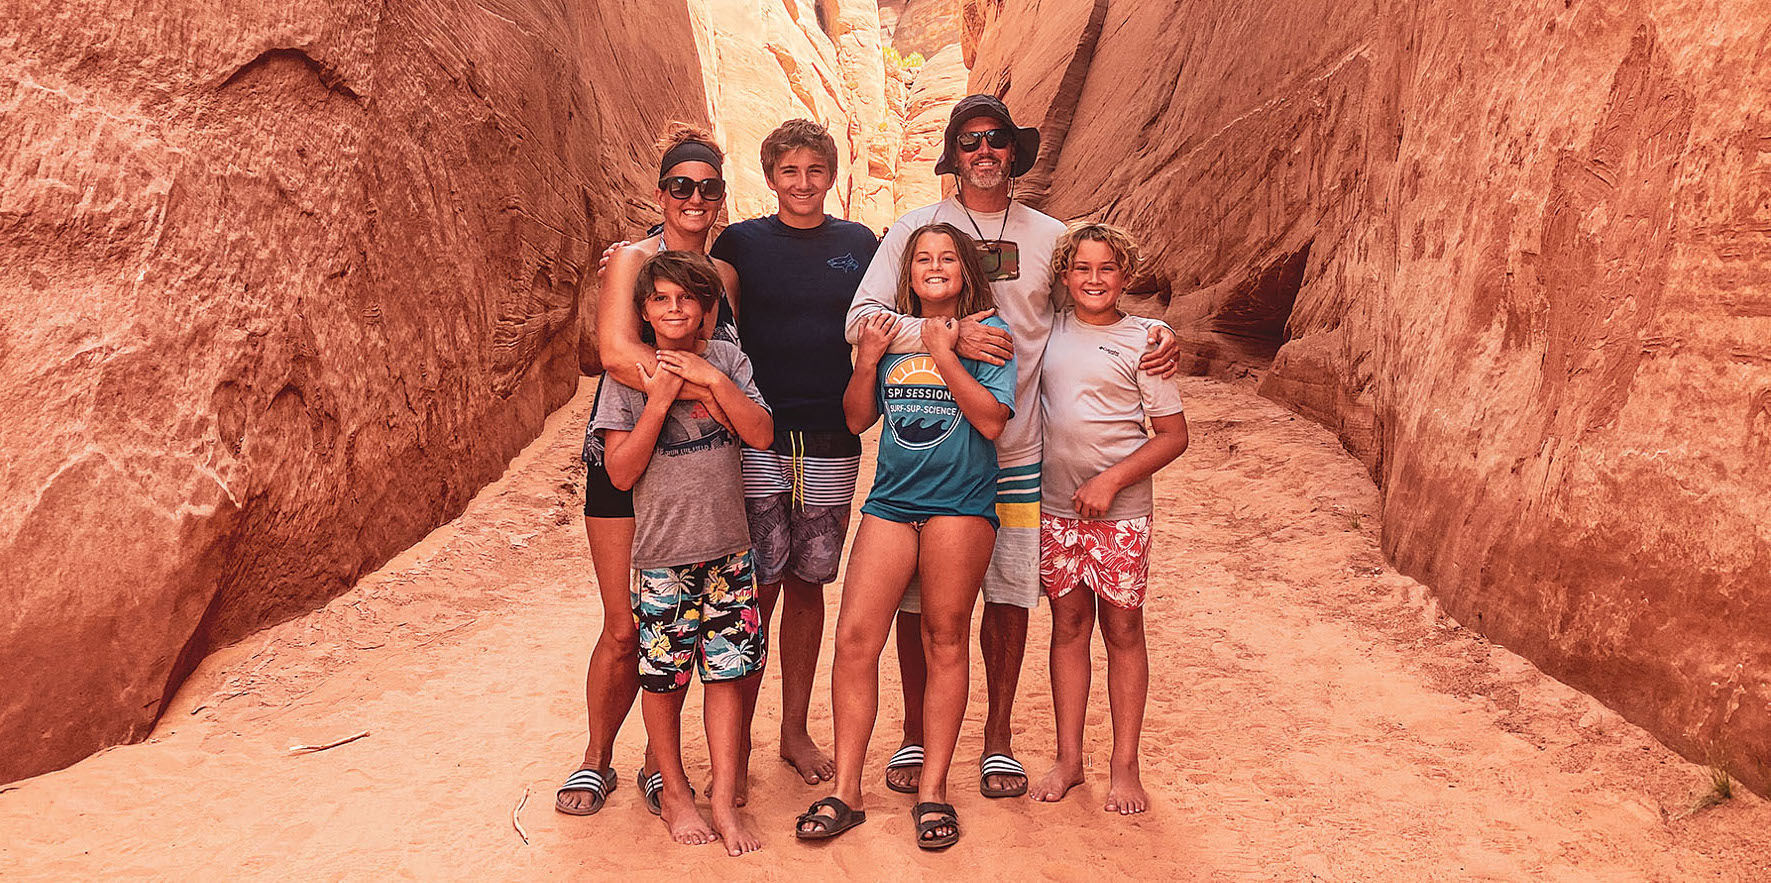 Crazy Family Adventure in a canyon